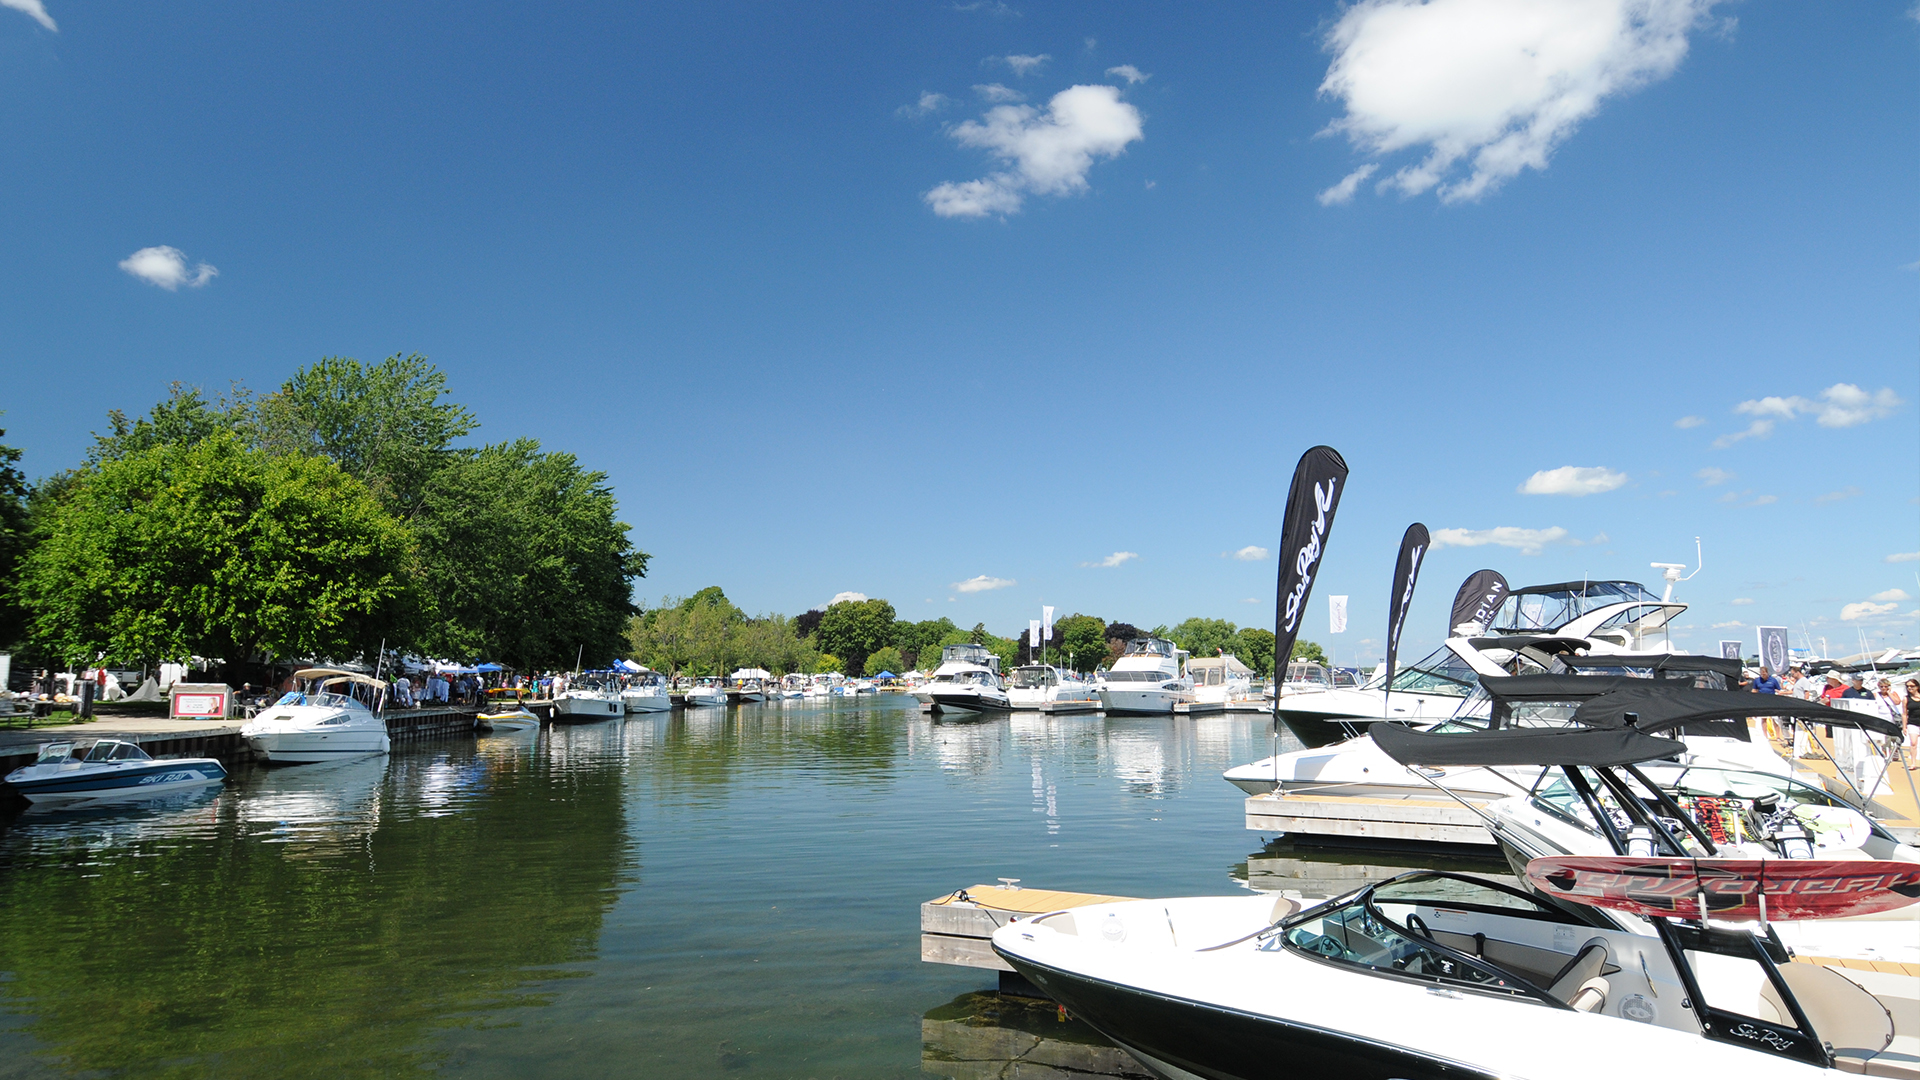 boatshow - Events You Don't Want To Miss This June